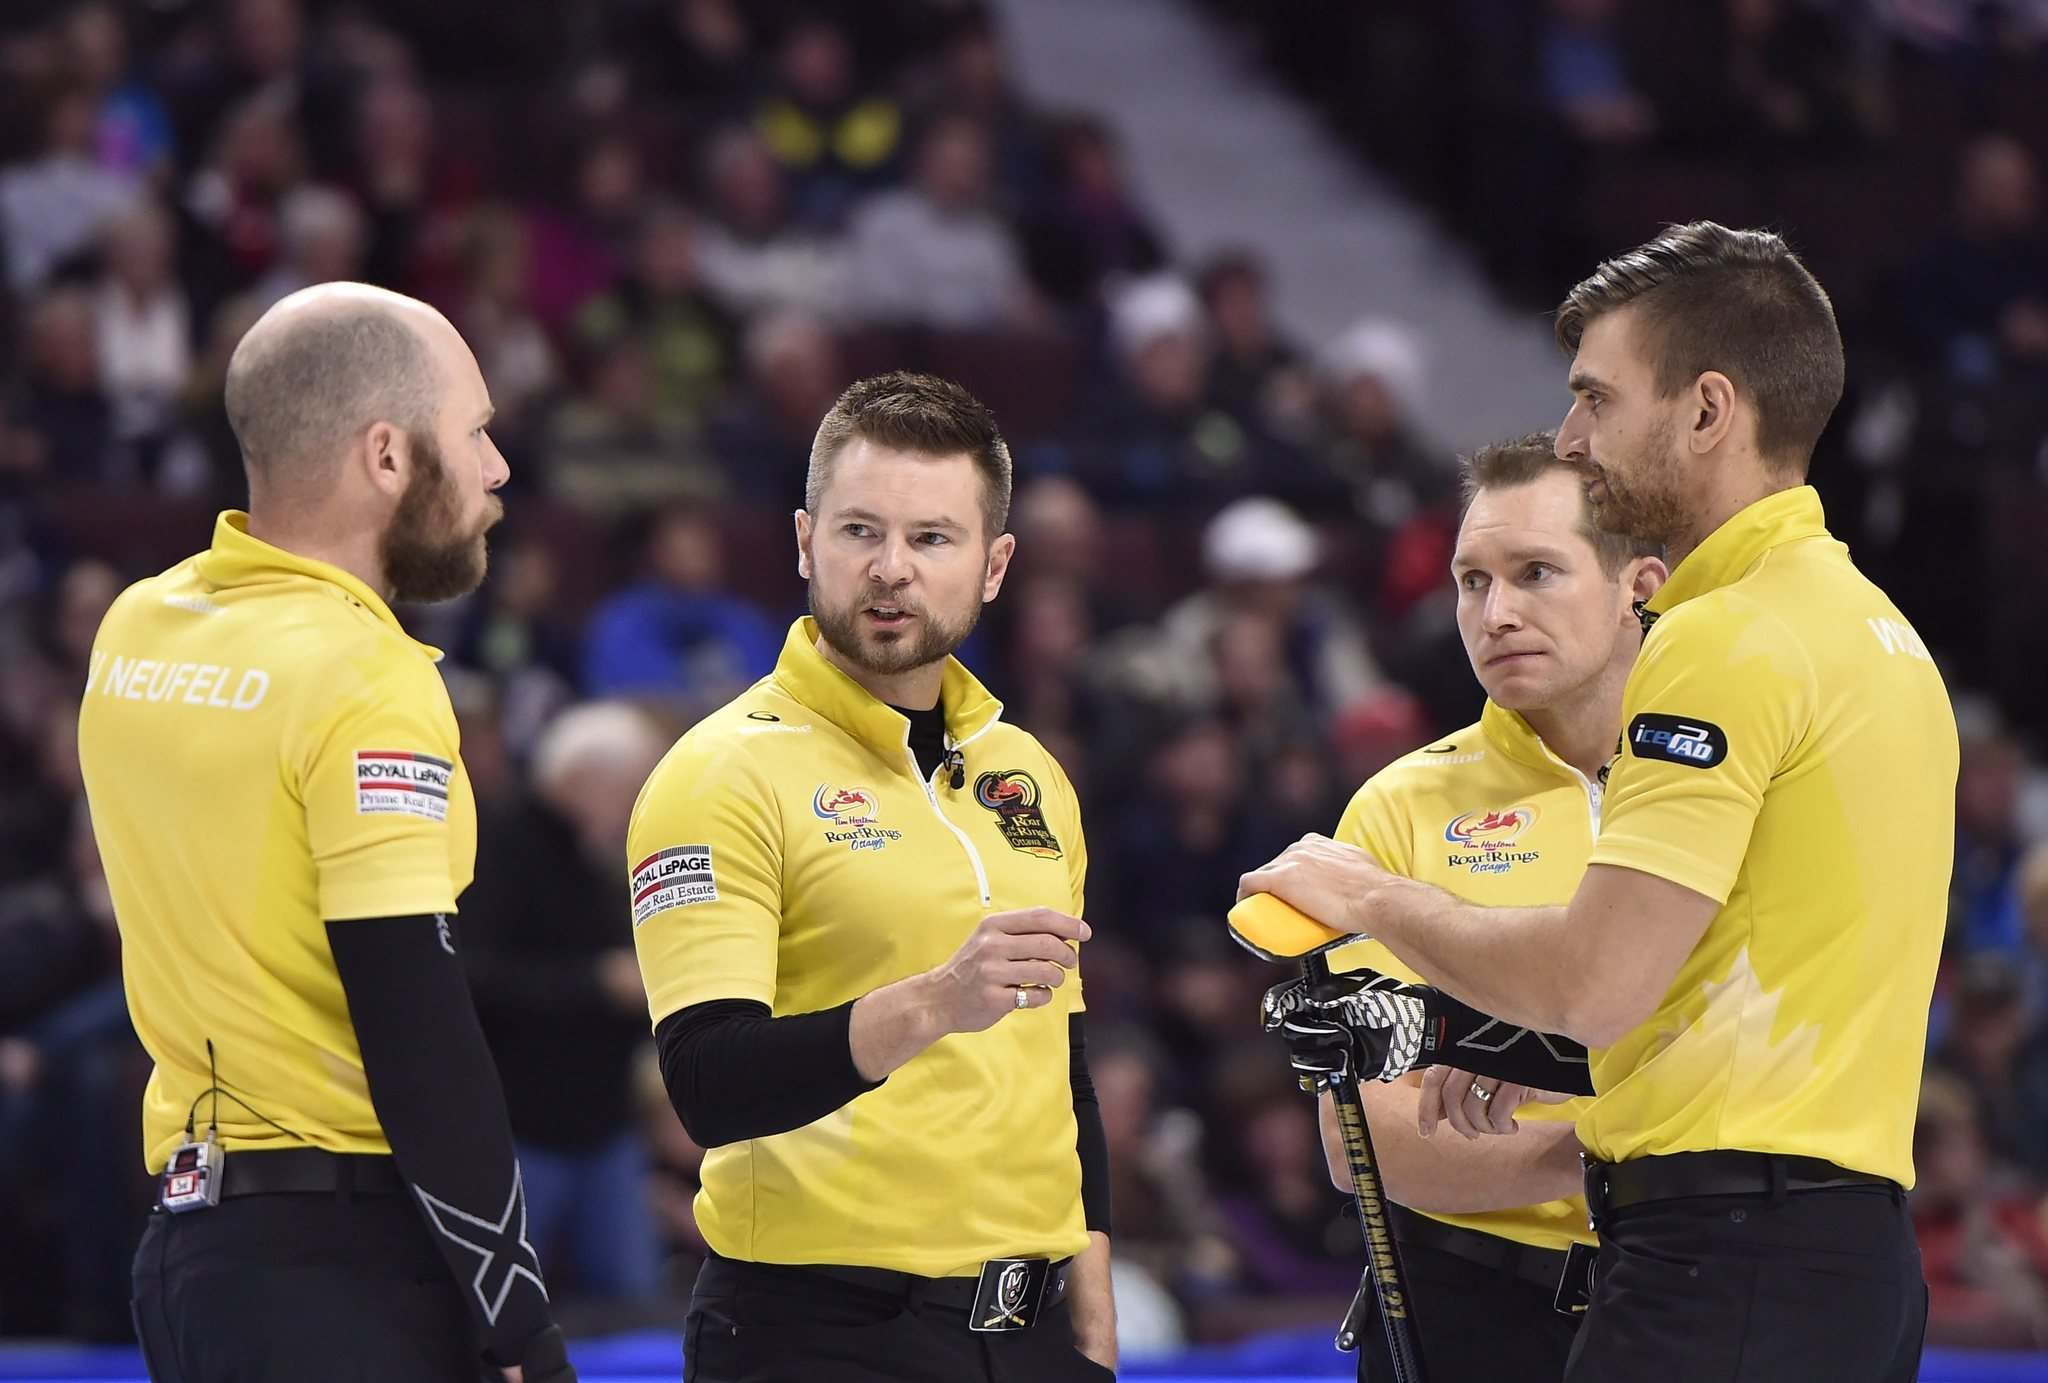 Skip Mike McEwen of Winnipeg, Man. talks with third B.J. Neufeld, left, second Matt Wozniak, second from right, and lead Denni Neufeld between ends during the men&#39;s semifinal at the 2017 Roar of the Rings Canadian Olympic Trials in Ottawa on Saturday, Dec. 9, 2017. THE CANADIAN PRESS/Justin Tang</p>